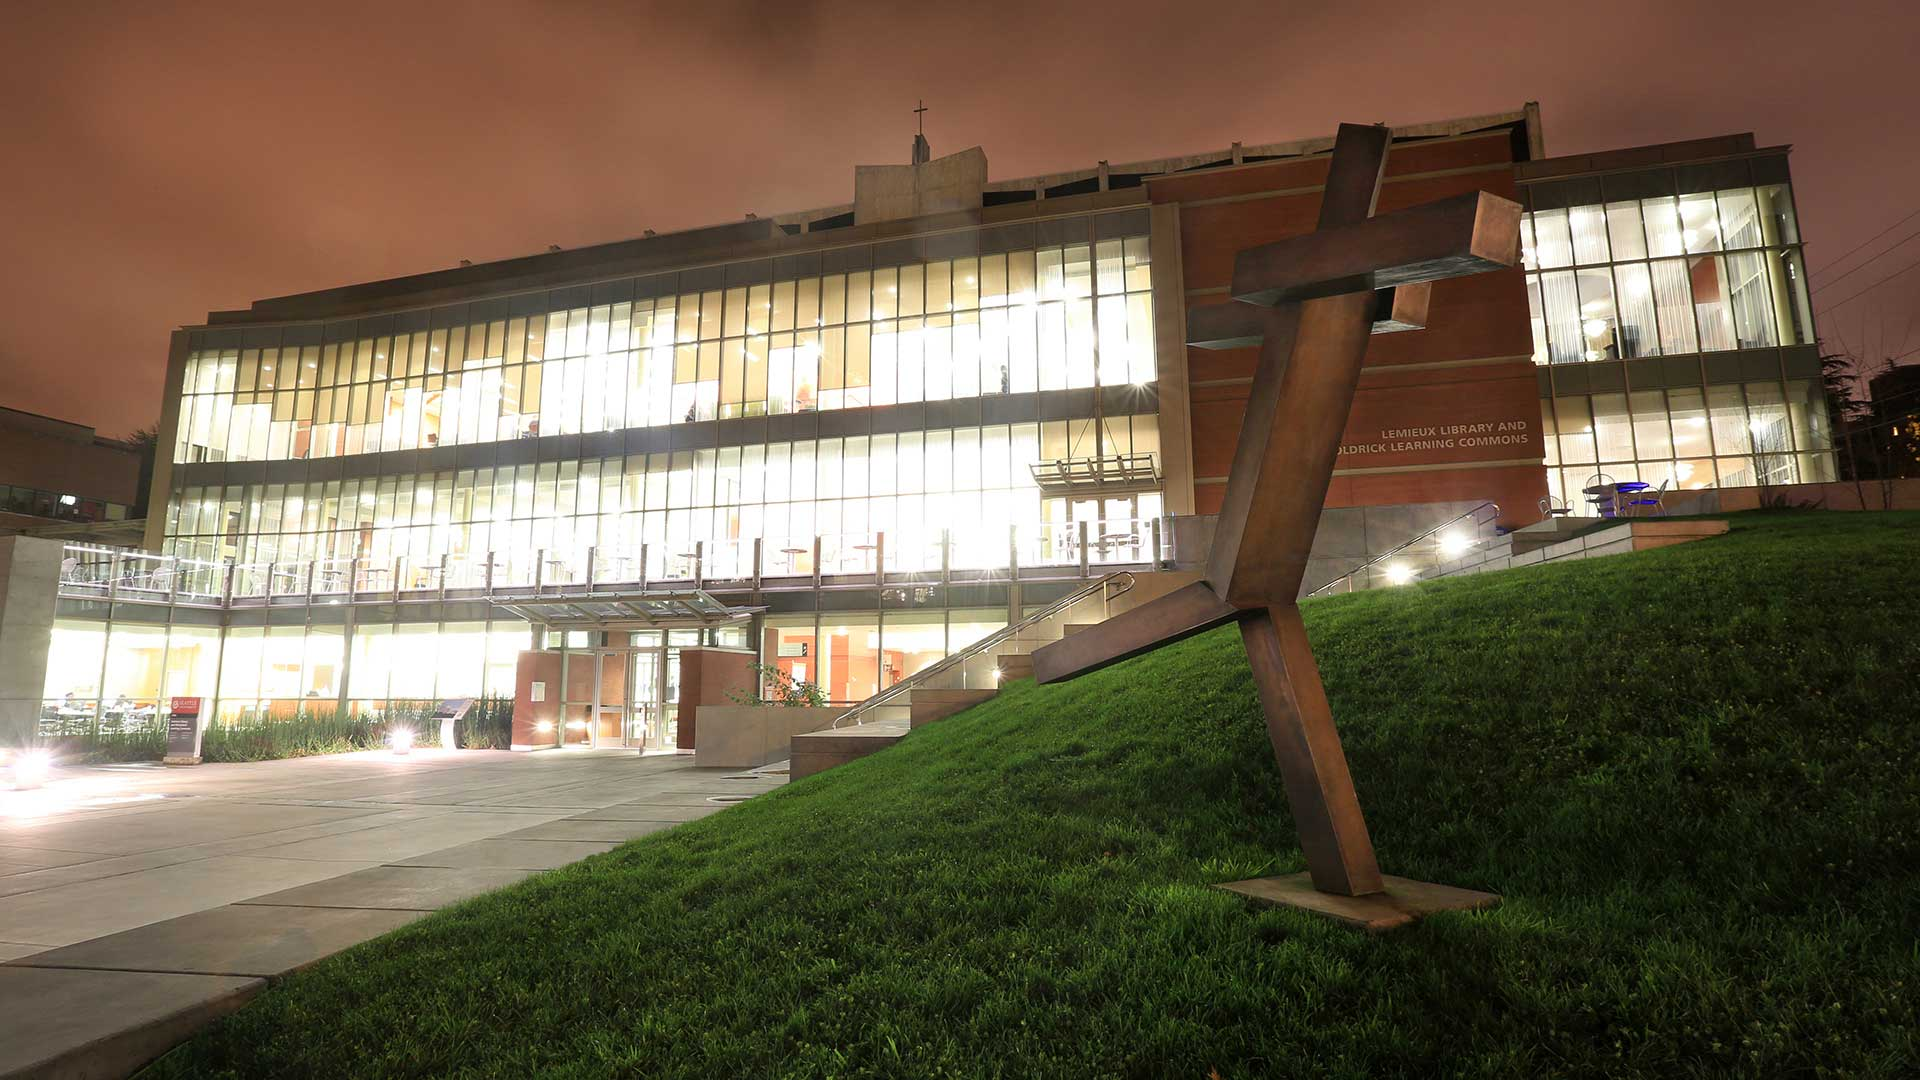 Lemieux Library and McGoldrick Learning Commons - Exterior at Night